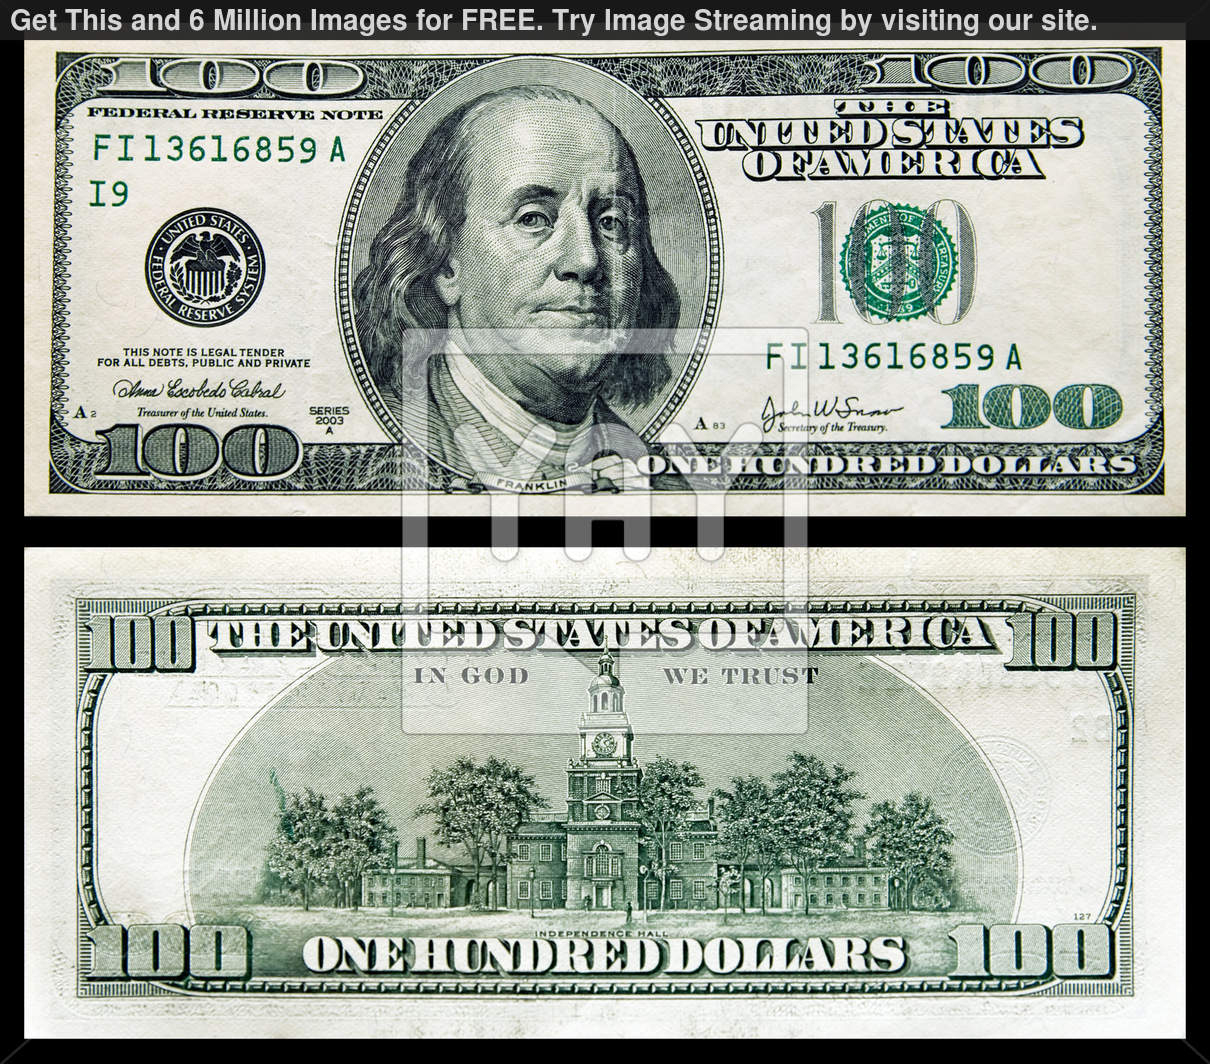 14 Hundred Dollar Bill Psd Images - 100 Dollar Bill Without Face - Free Printable Dollar Bill Template